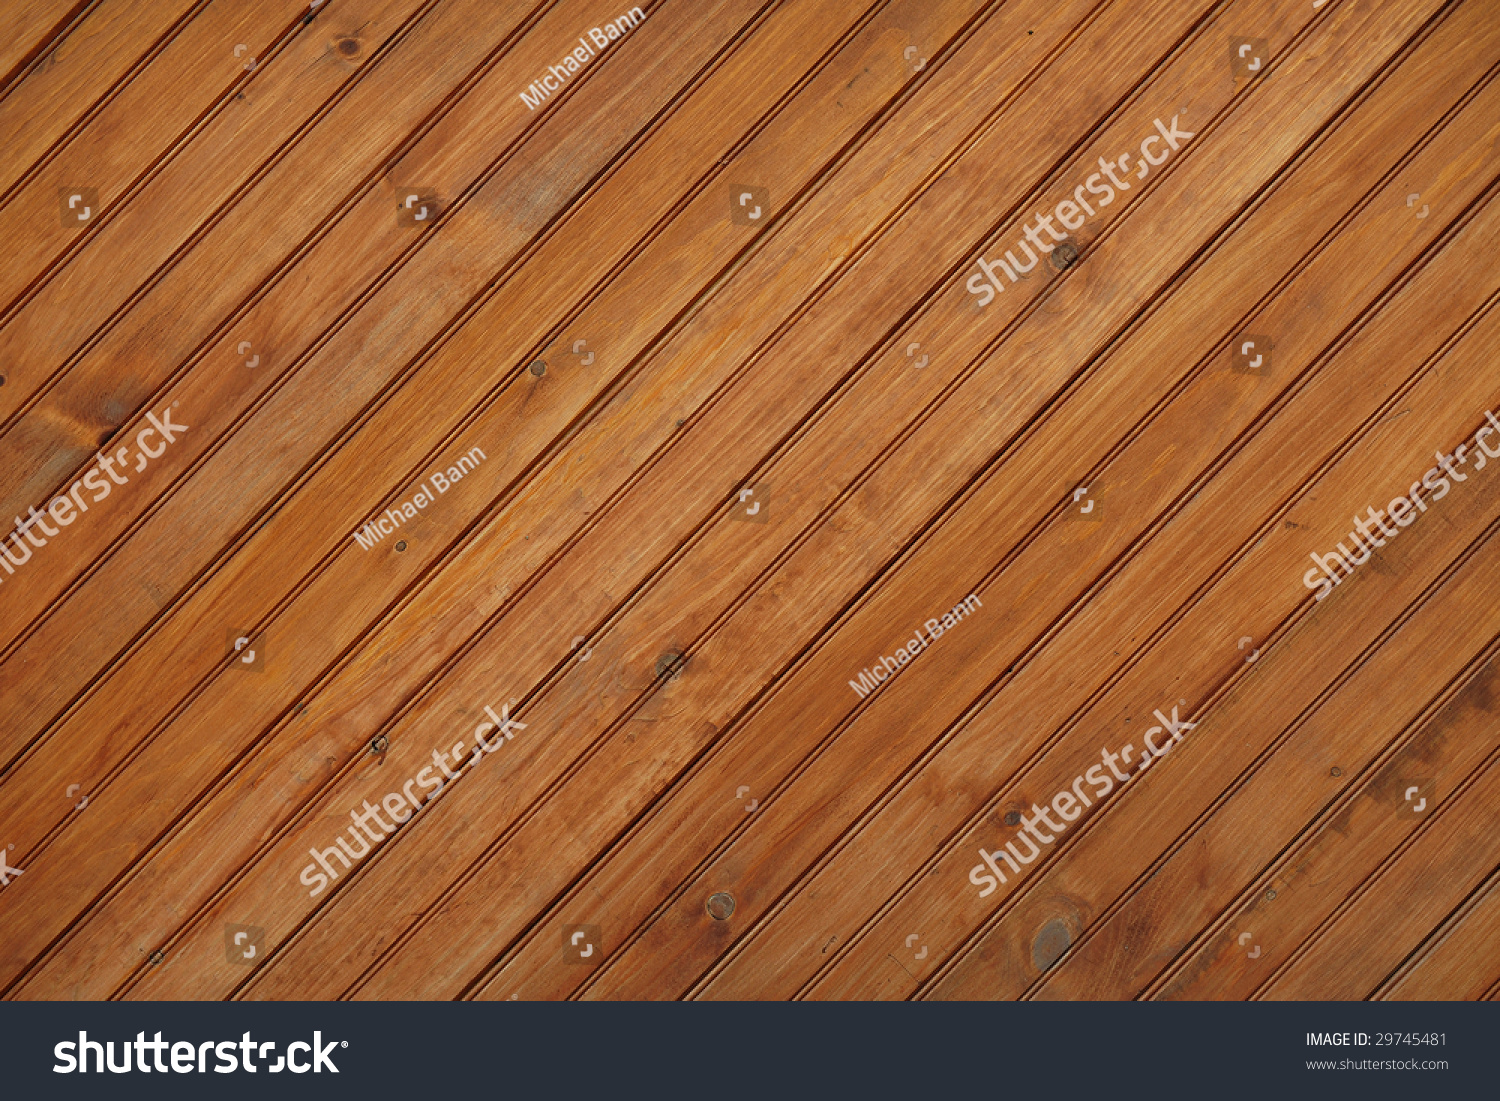 Wood planks at 45 degree angle stock photo 29745481 for Hardwood floors 45 degree angle